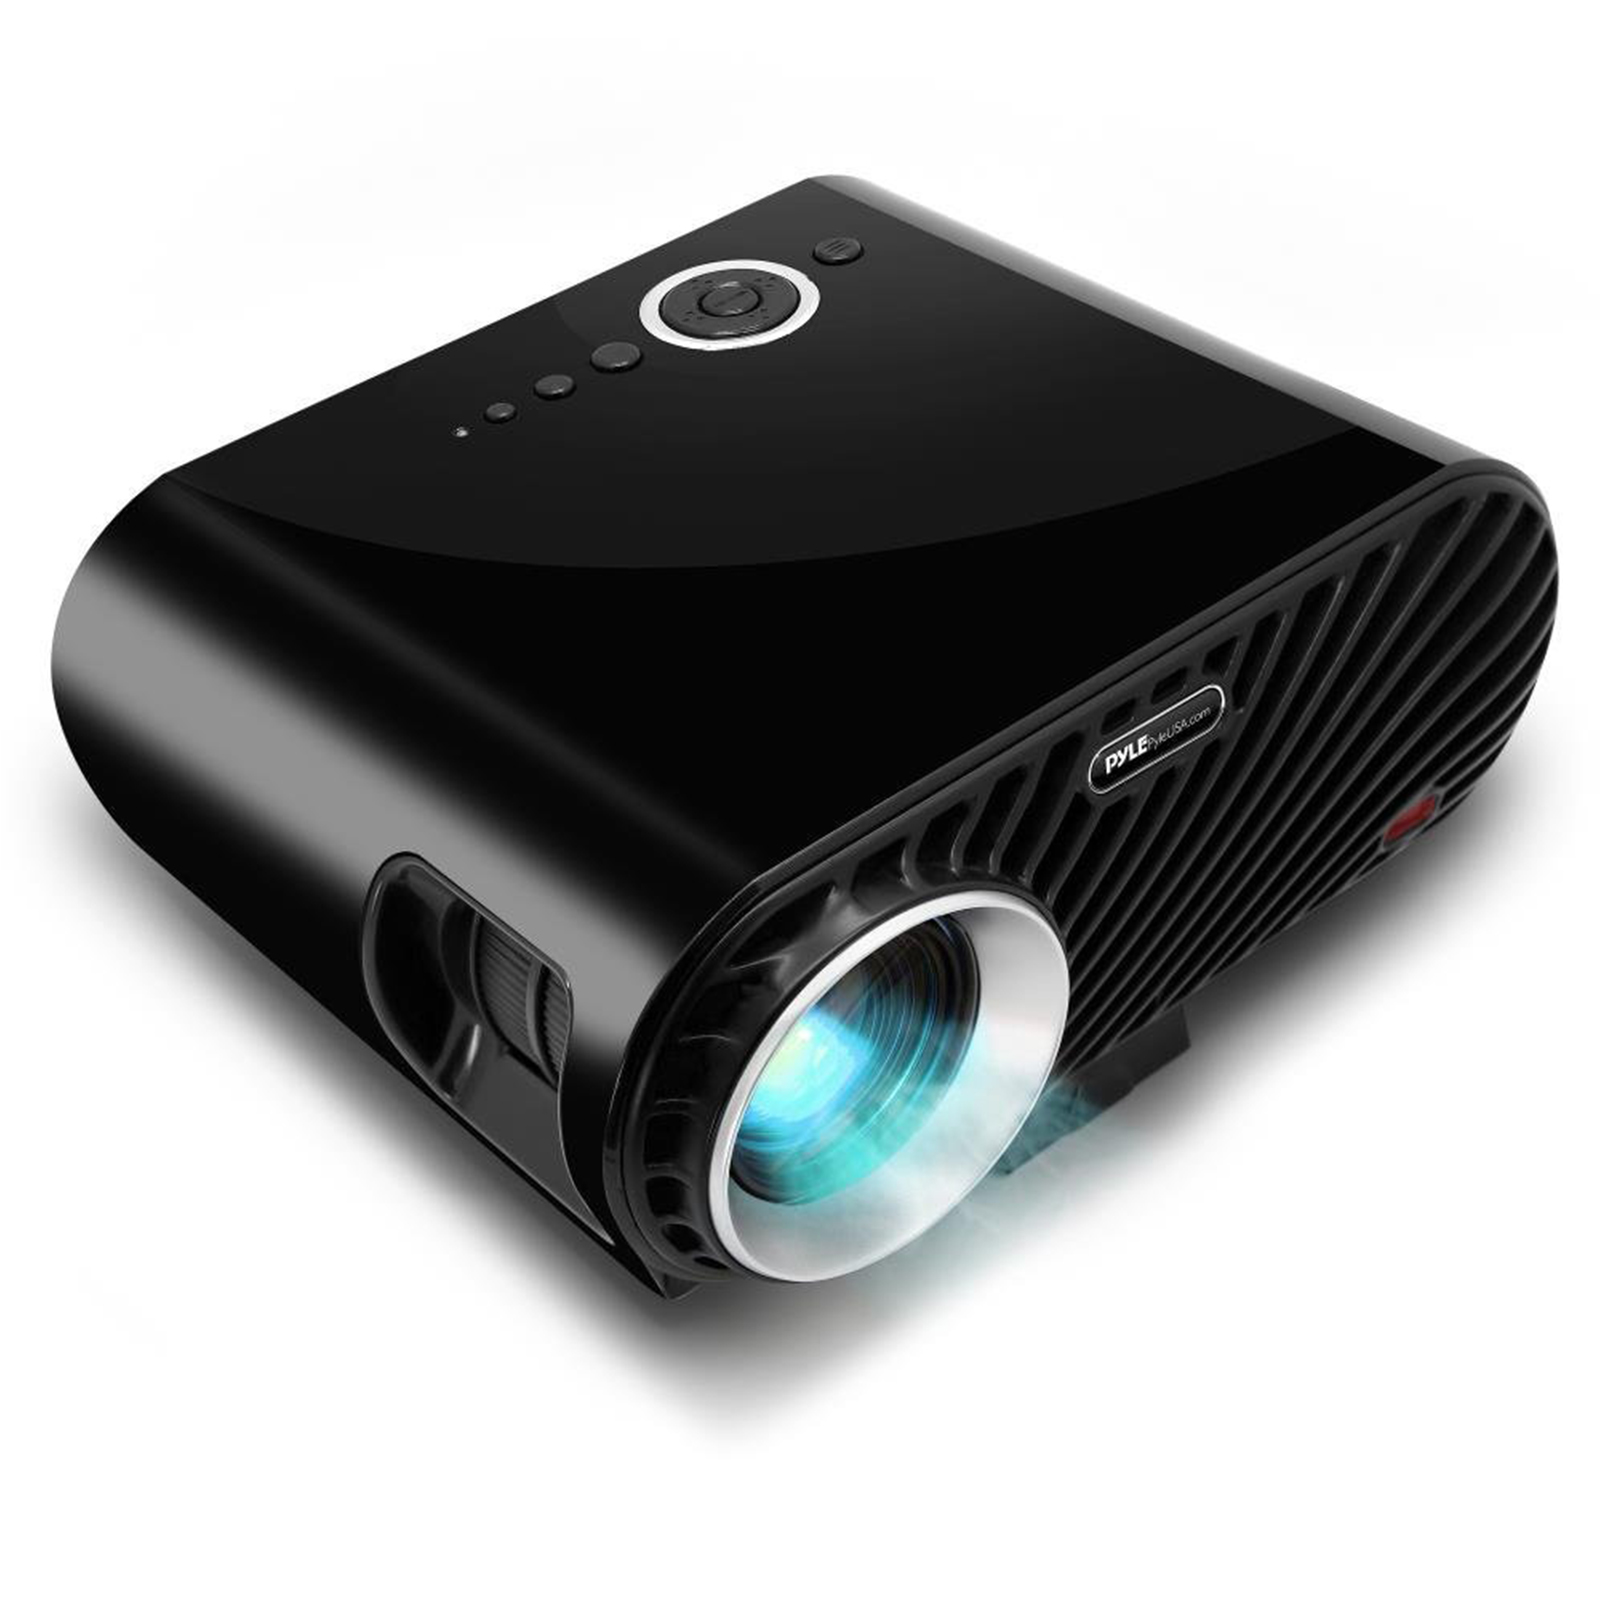 Pyle Portable Multimedia Home Theater Projector - HD 1080p LED with USB HDMI Data System Projection for Entertainment Video Photo Game Full Cinema Movie in your Laptop